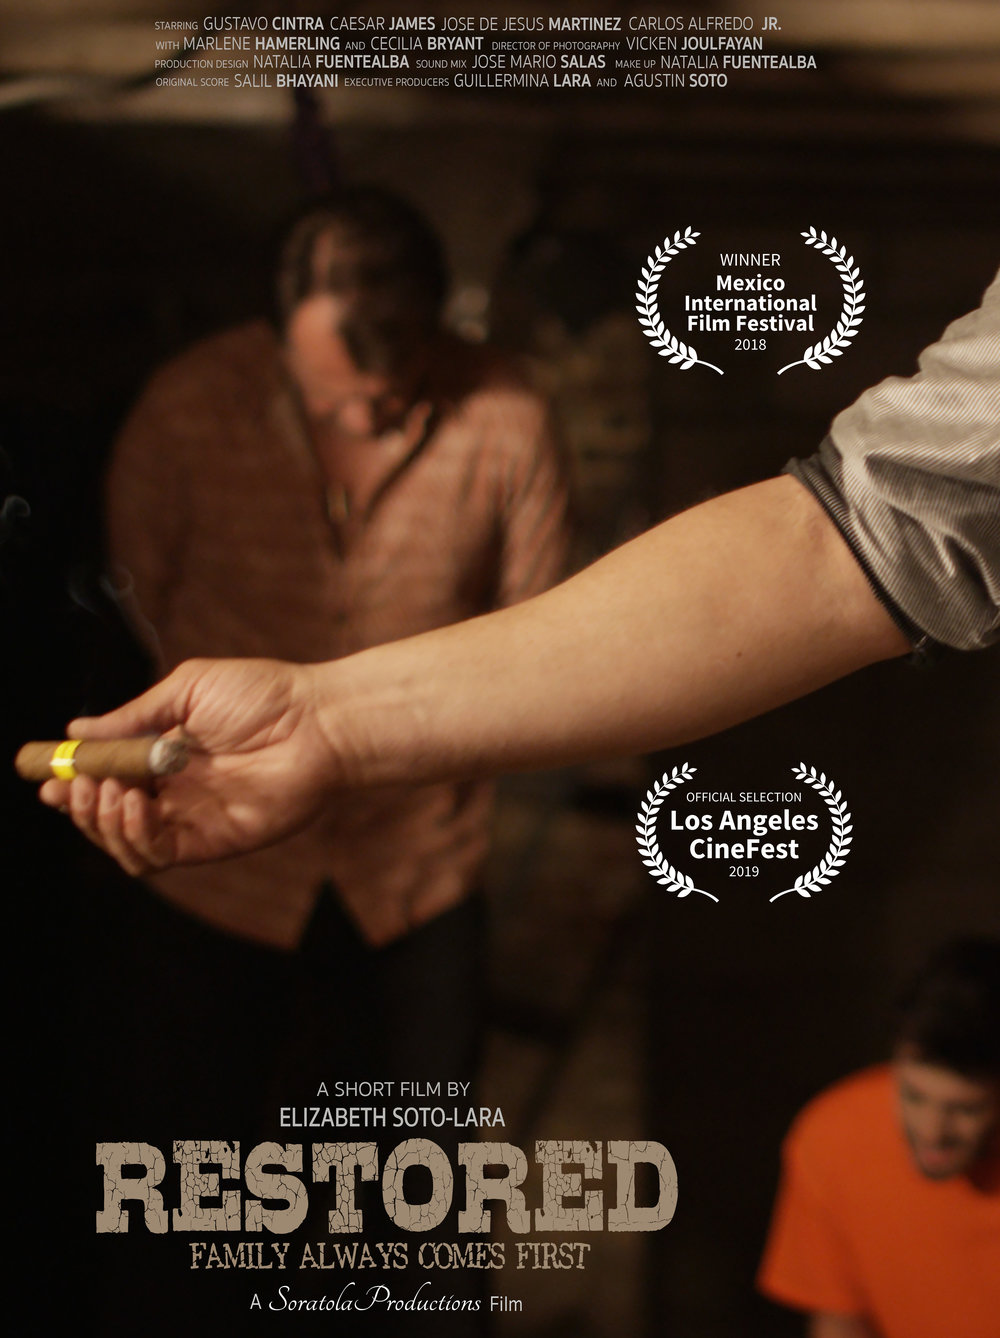 Restored (2017) - (Short Film)Director/Screenwriter: Elizabeth Soto-LaraDirector of Photography: Vicken JoulfayanGenre: DramaLanguage: English/Spanish (Subtitles)Logline:A man who was forced to become a criminal in order to be part of his family, fights for his life in the hospital while his soul is floating in Limbo reviving his memories of the life of violence he never wanted.